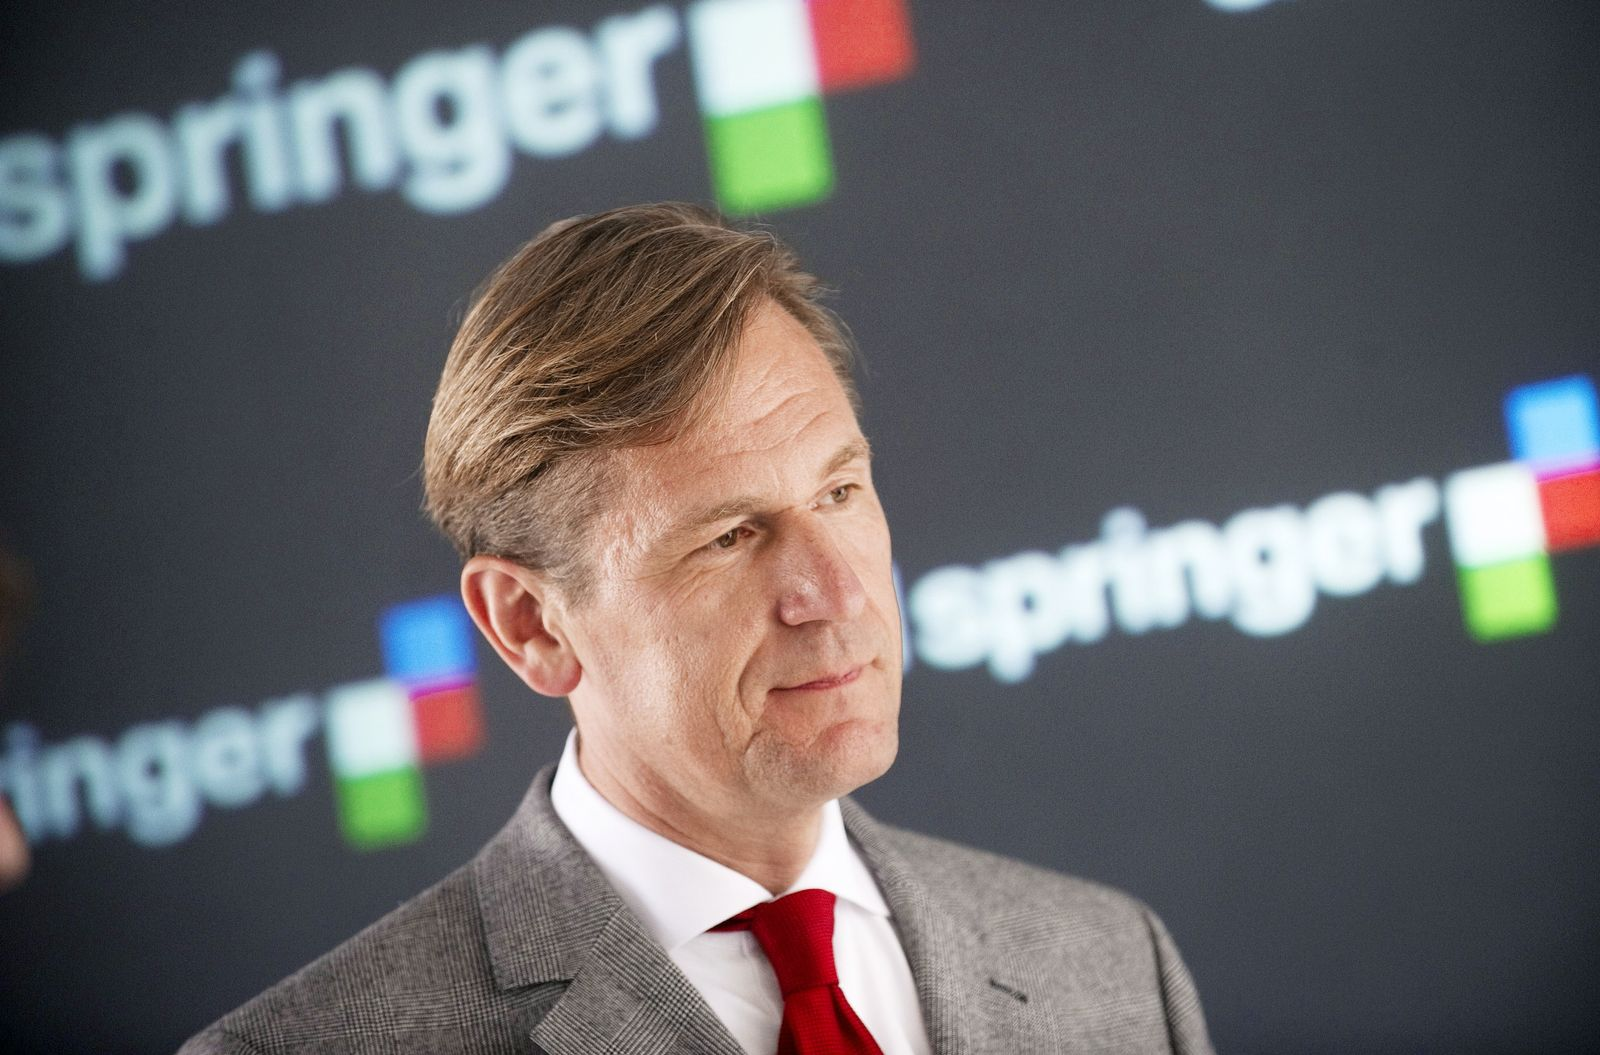 Axel Springer / Mathias Döpfner